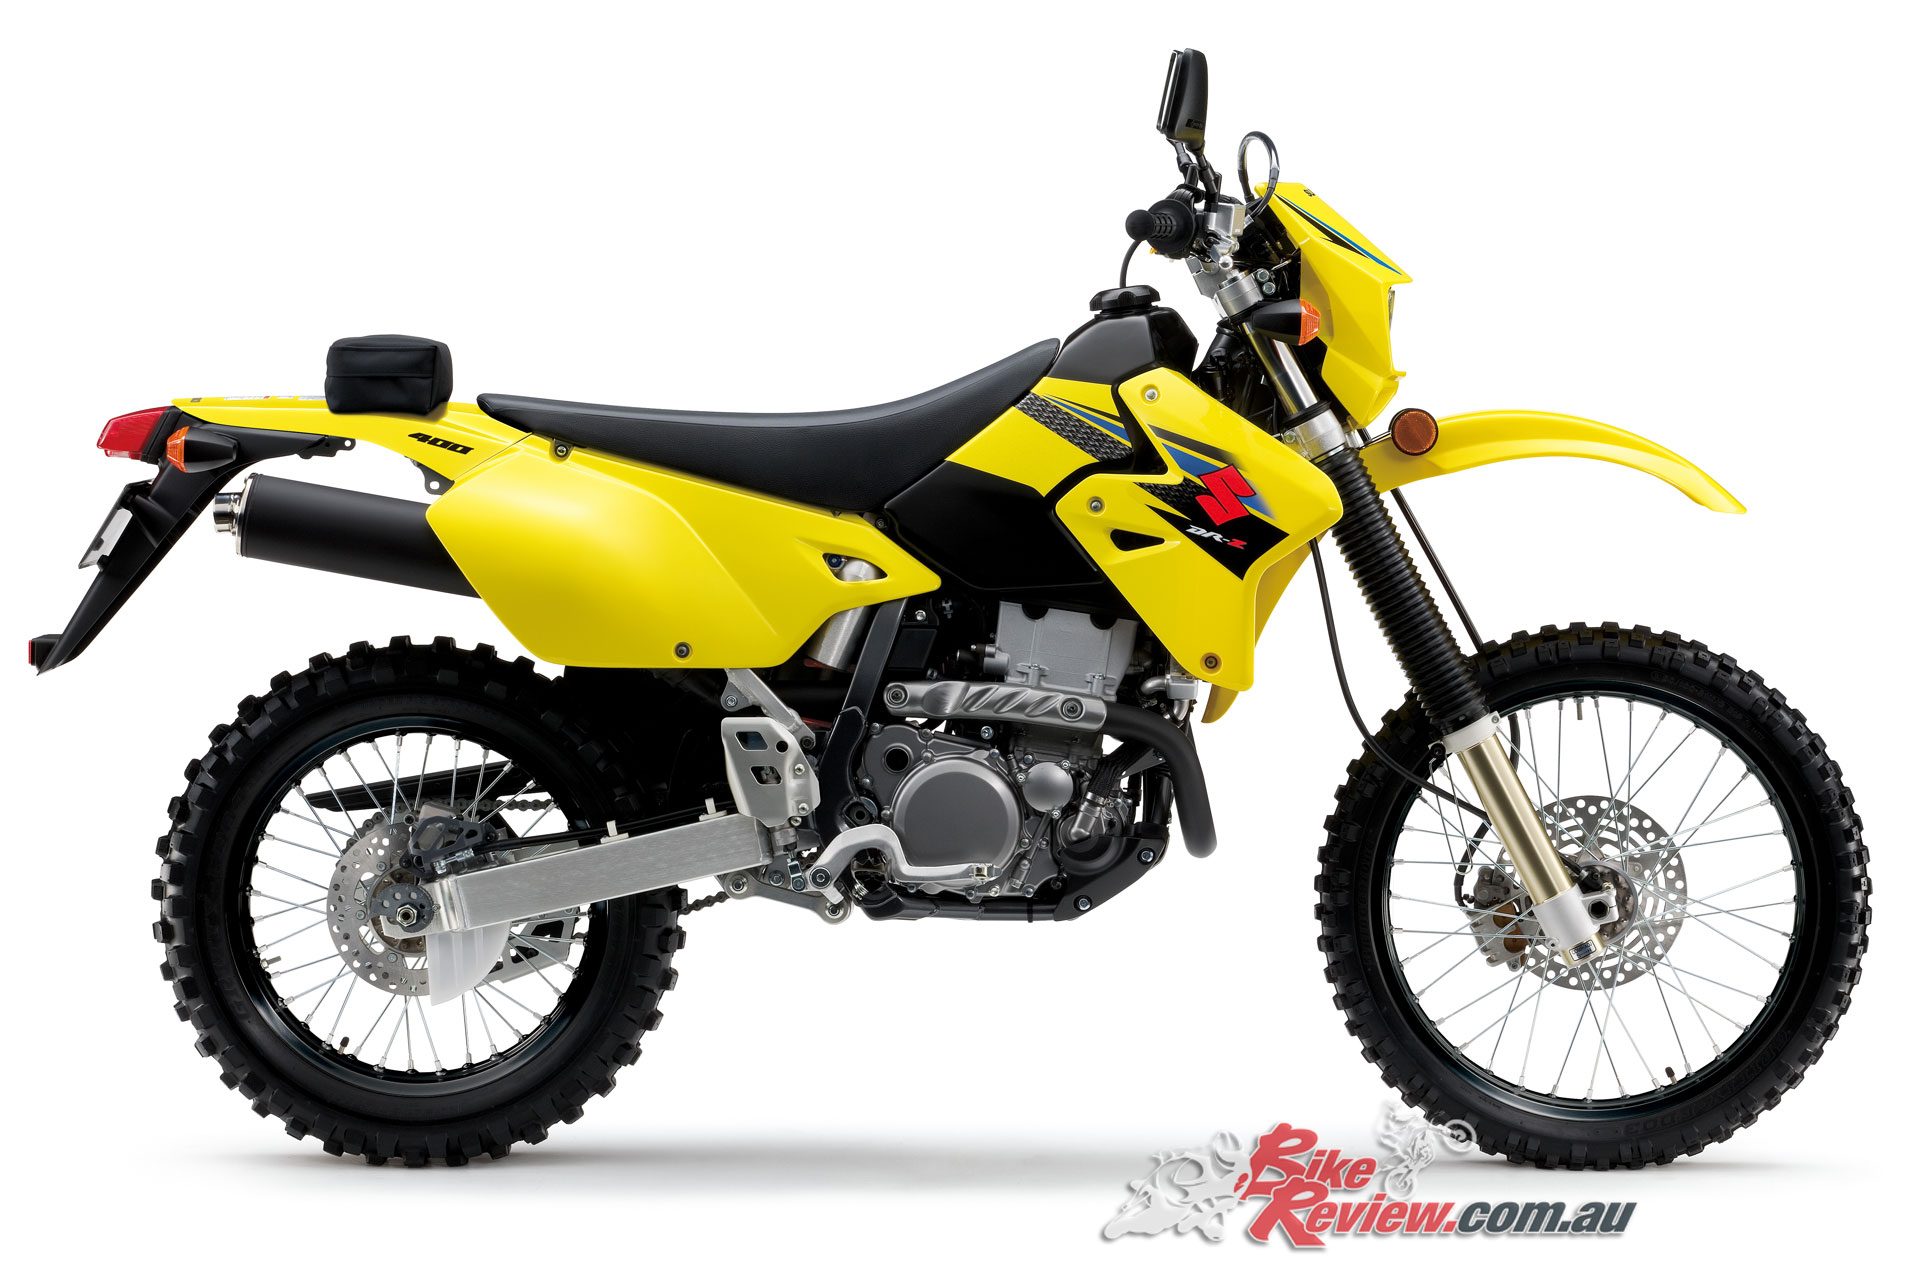 2018 suzuki dr z400e on sale now bike review. Black Bedroom Furniture Sets. Home Design Ideas